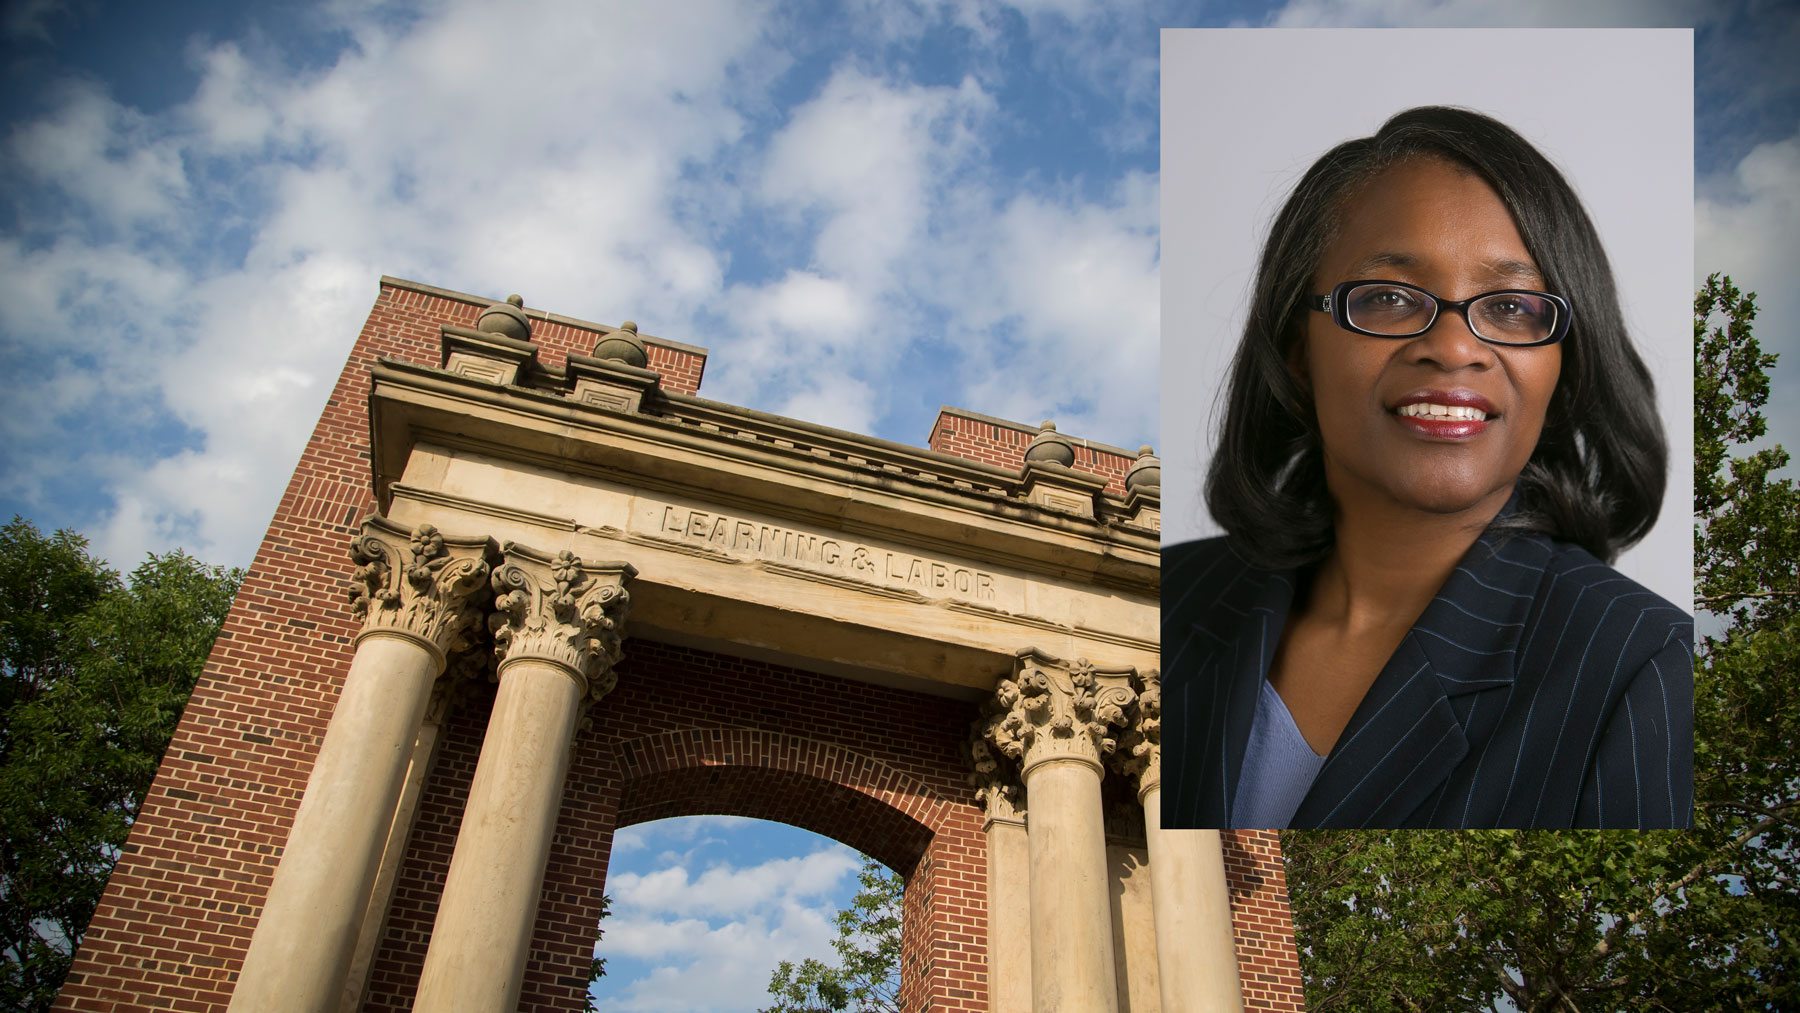 Portrait of Venetia Patton over larger image of the Hallene Gateway at Illinois. Portrait provided without credit.